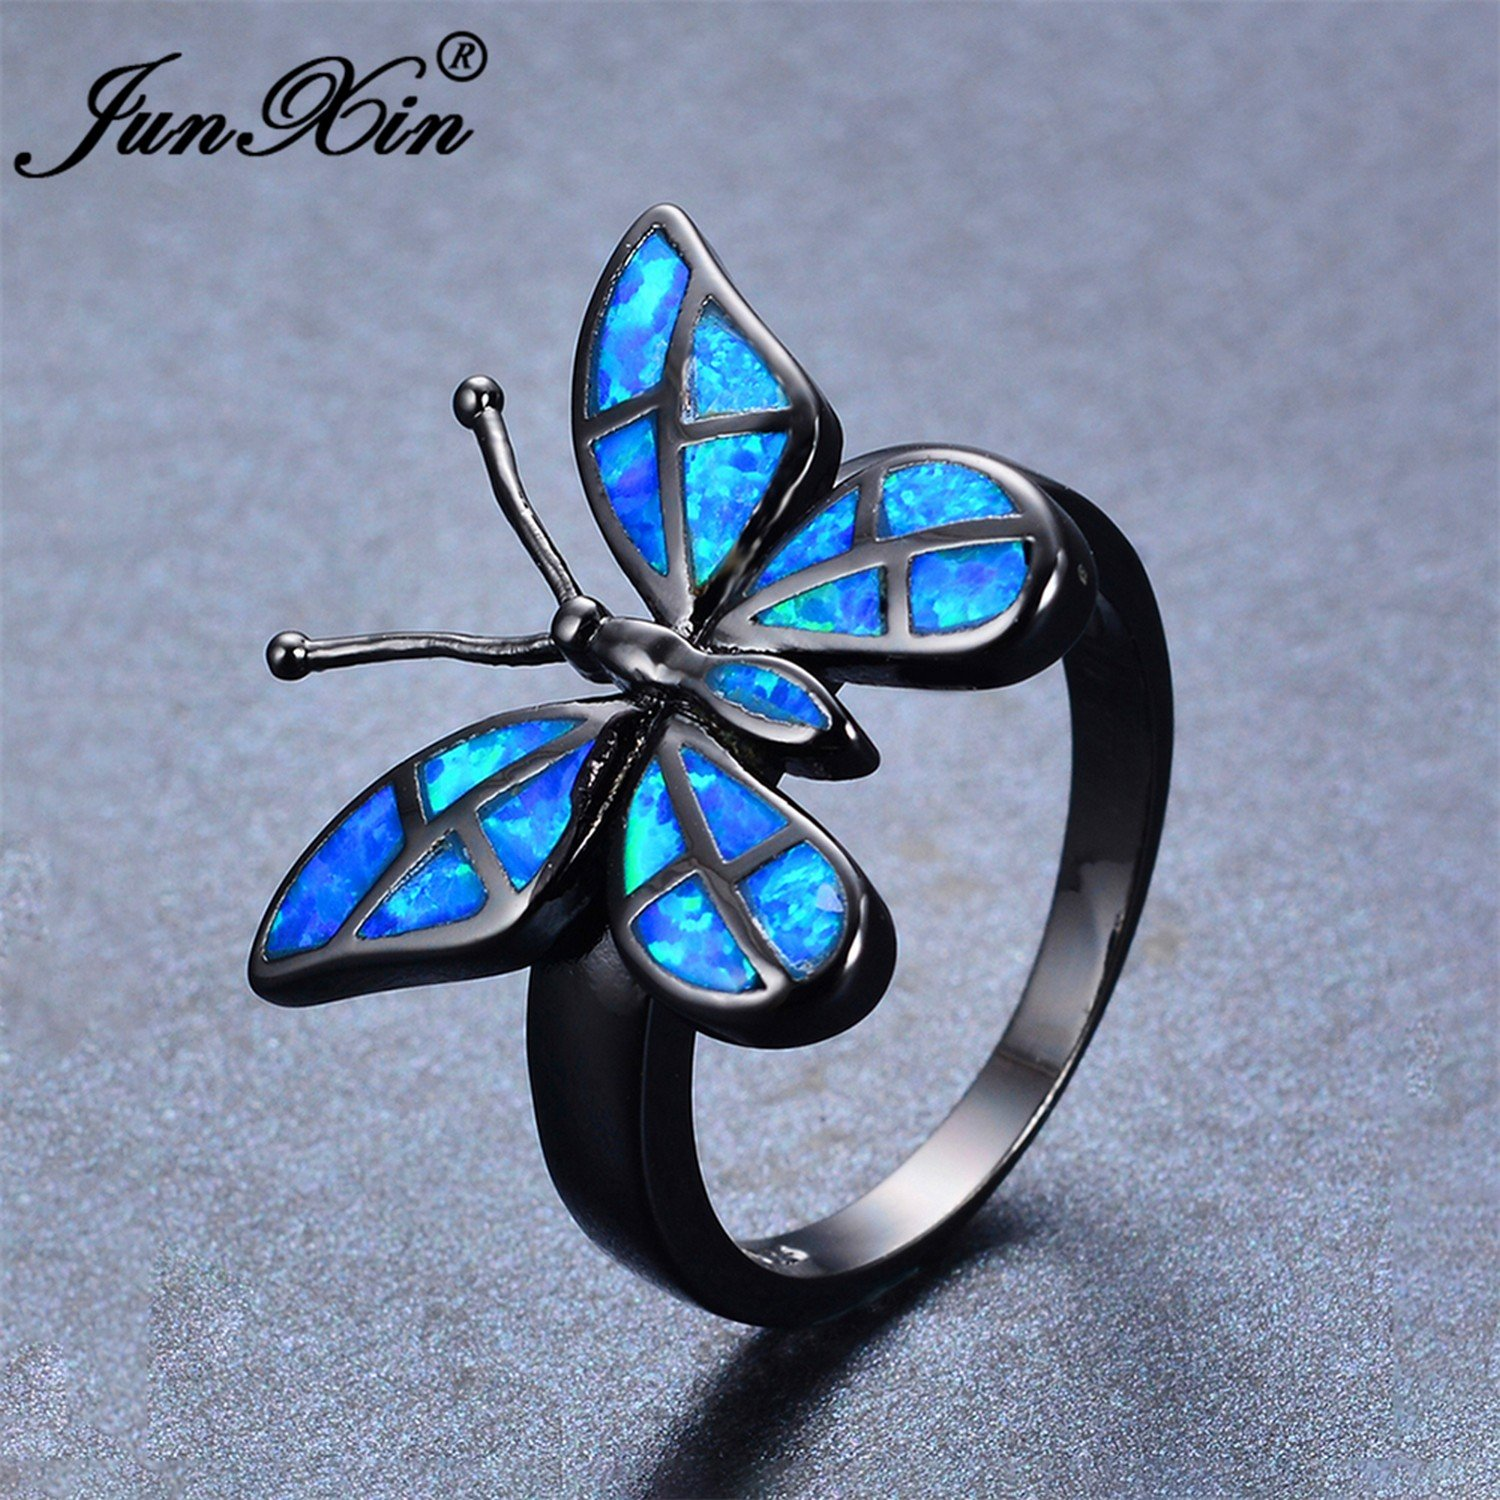 Slyq Jewelry Brand Female Butterfly Ring Fashion bluee Fire Opal Ring Black gold Filled Jewelry Vintage Wedding Rings for Women